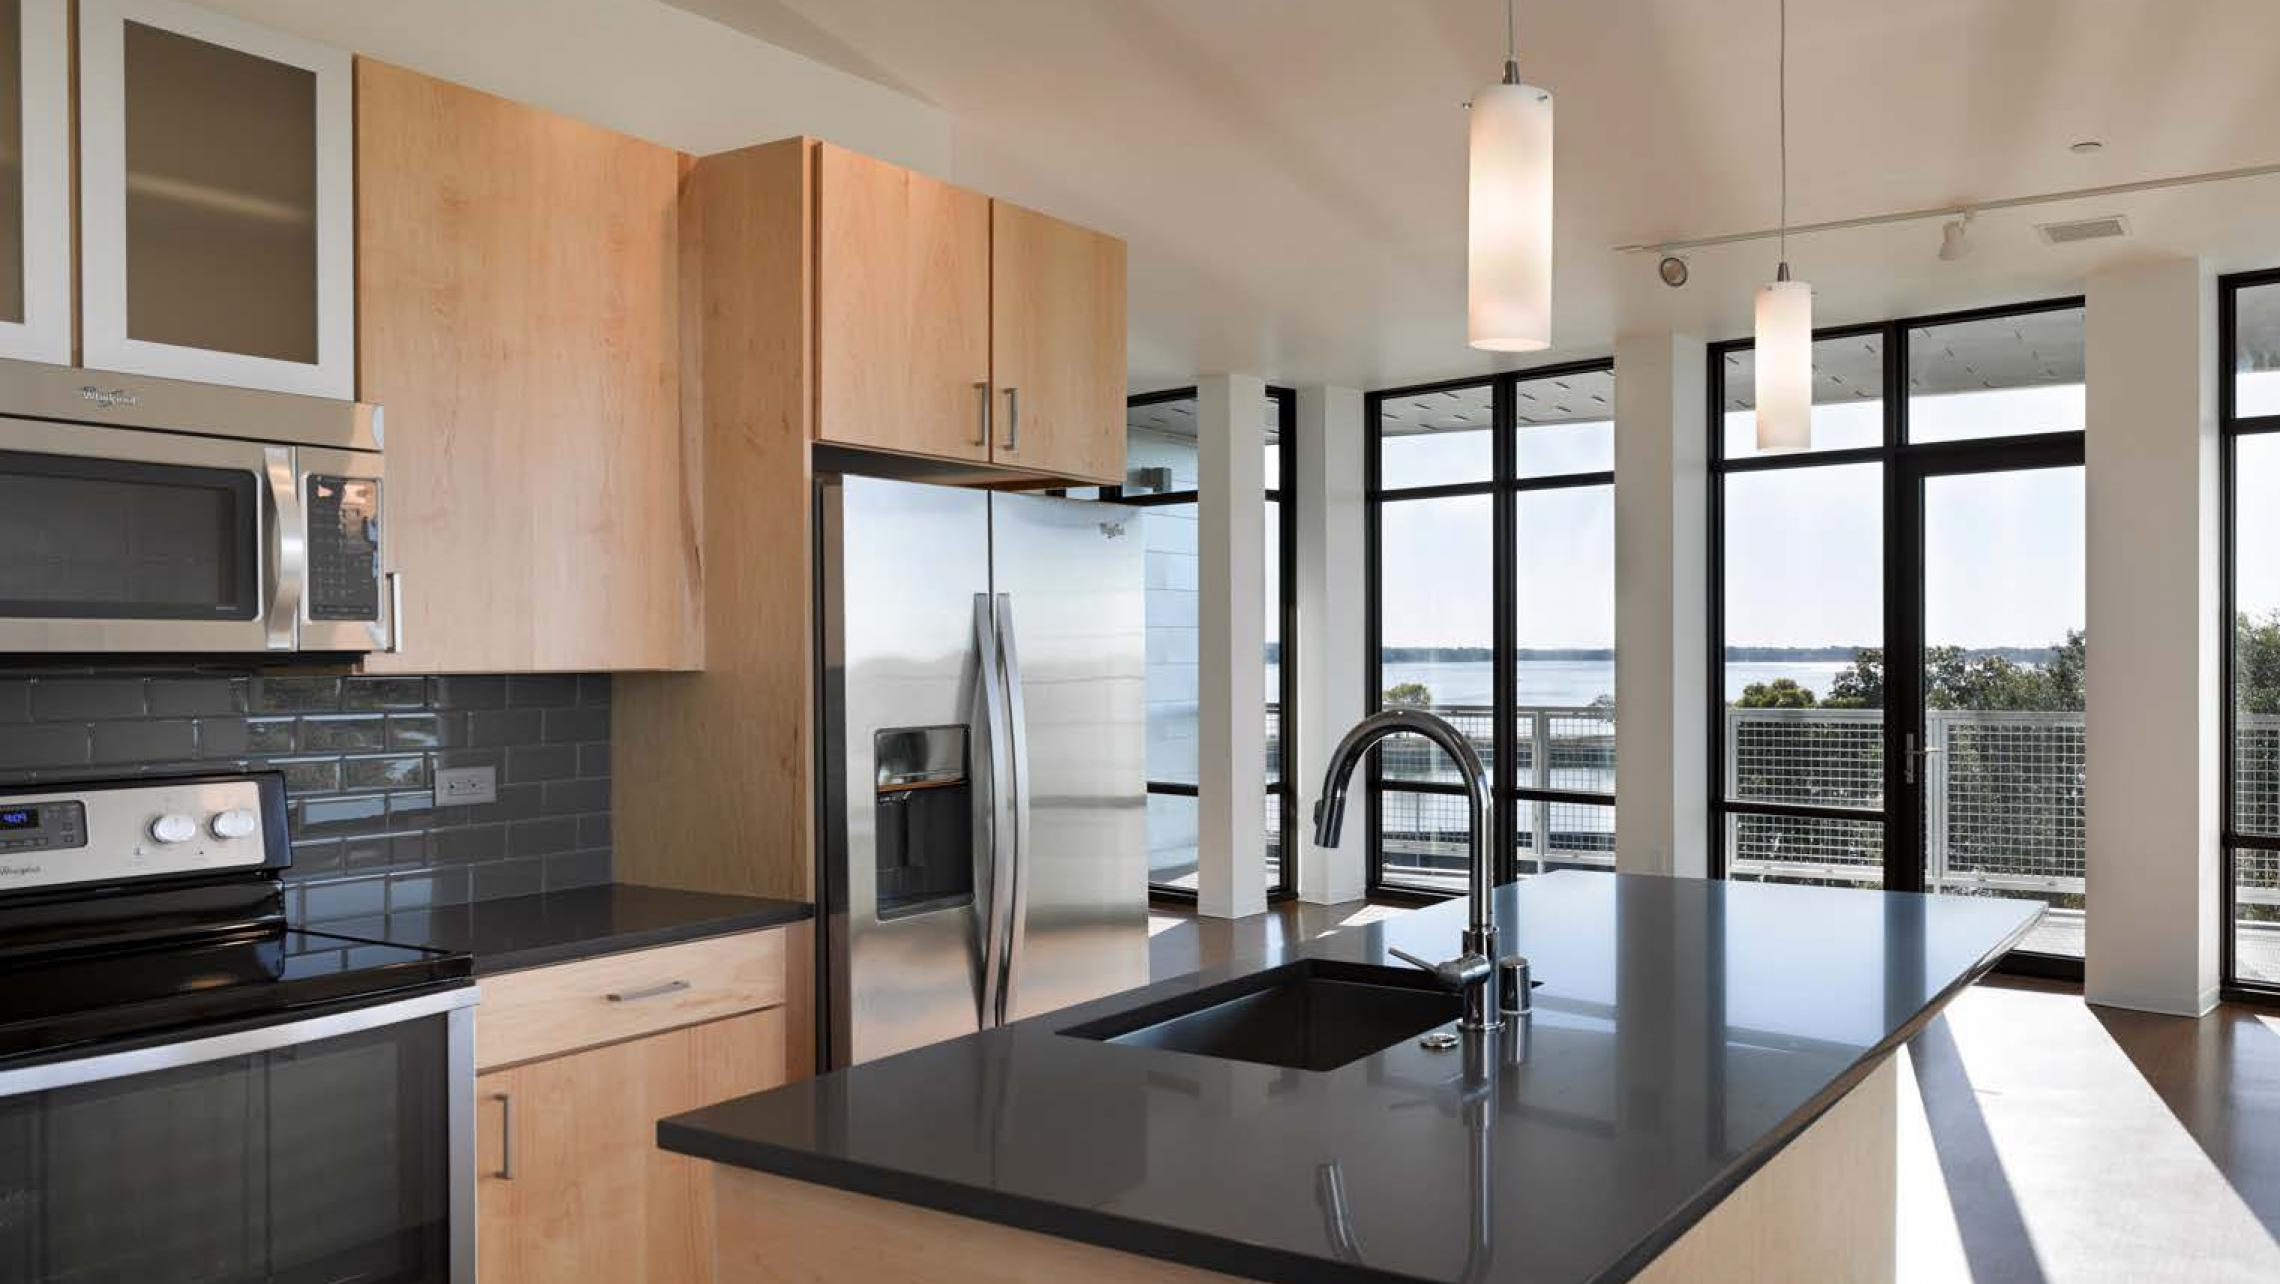 ULI Seven27 - Kitchen with a view of Lake Monona